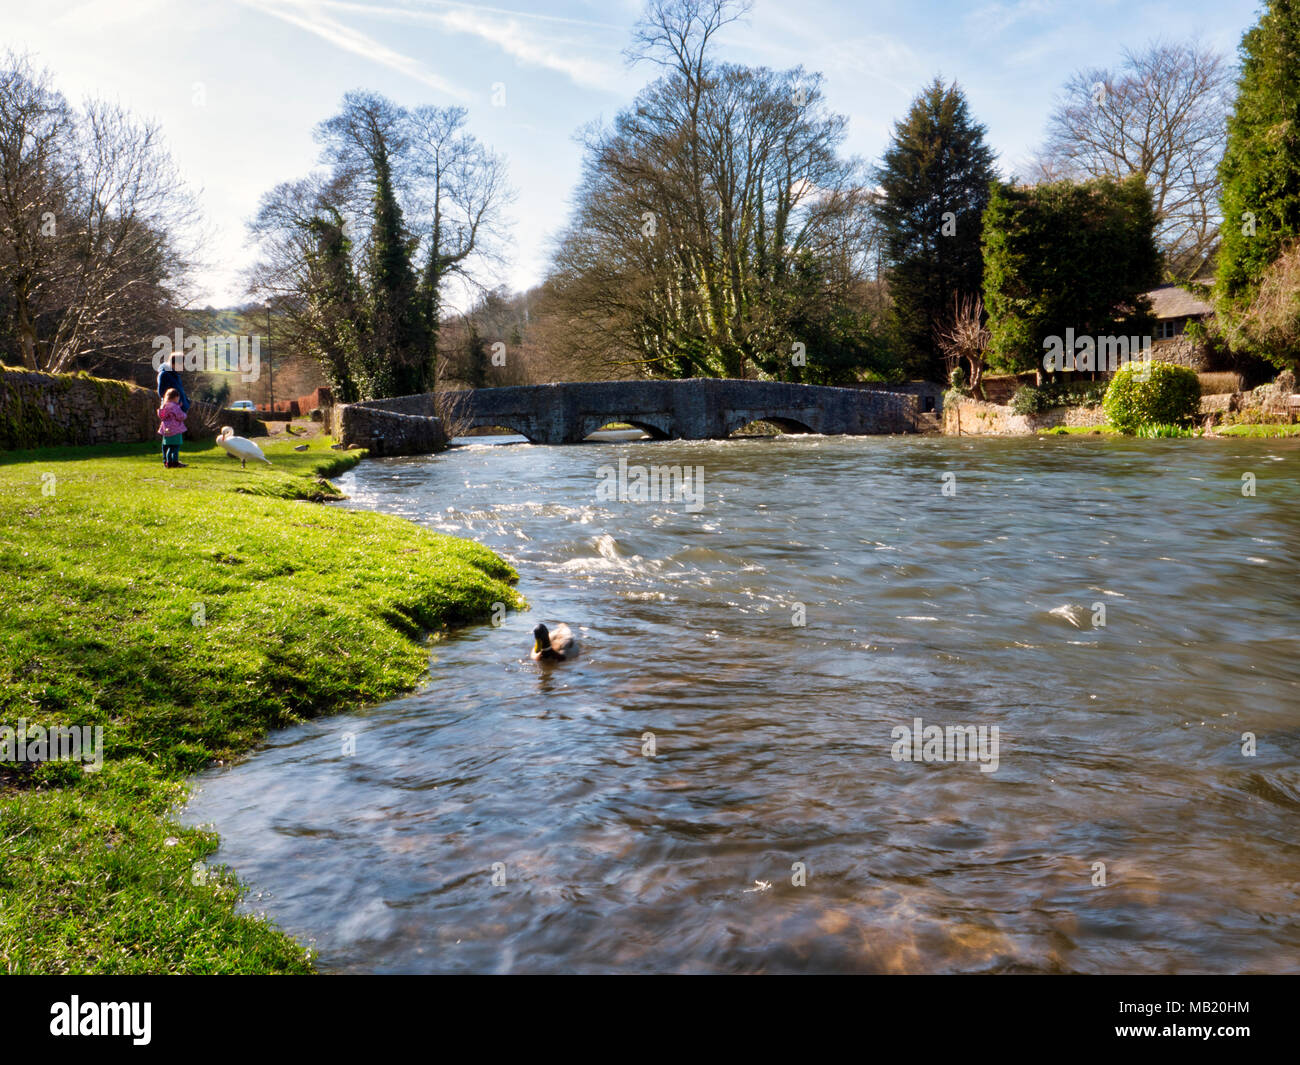 Peak District National Park. 5th Apr, 2018. UK Weather: visitors enjoying the glorious sunshine on Thursday after the wet Easter Bank Holiday break at Ashford on the Water, near Bakewell in the Peak District National Park Credit: Doug Blane/Alamy Live News - Stock Image